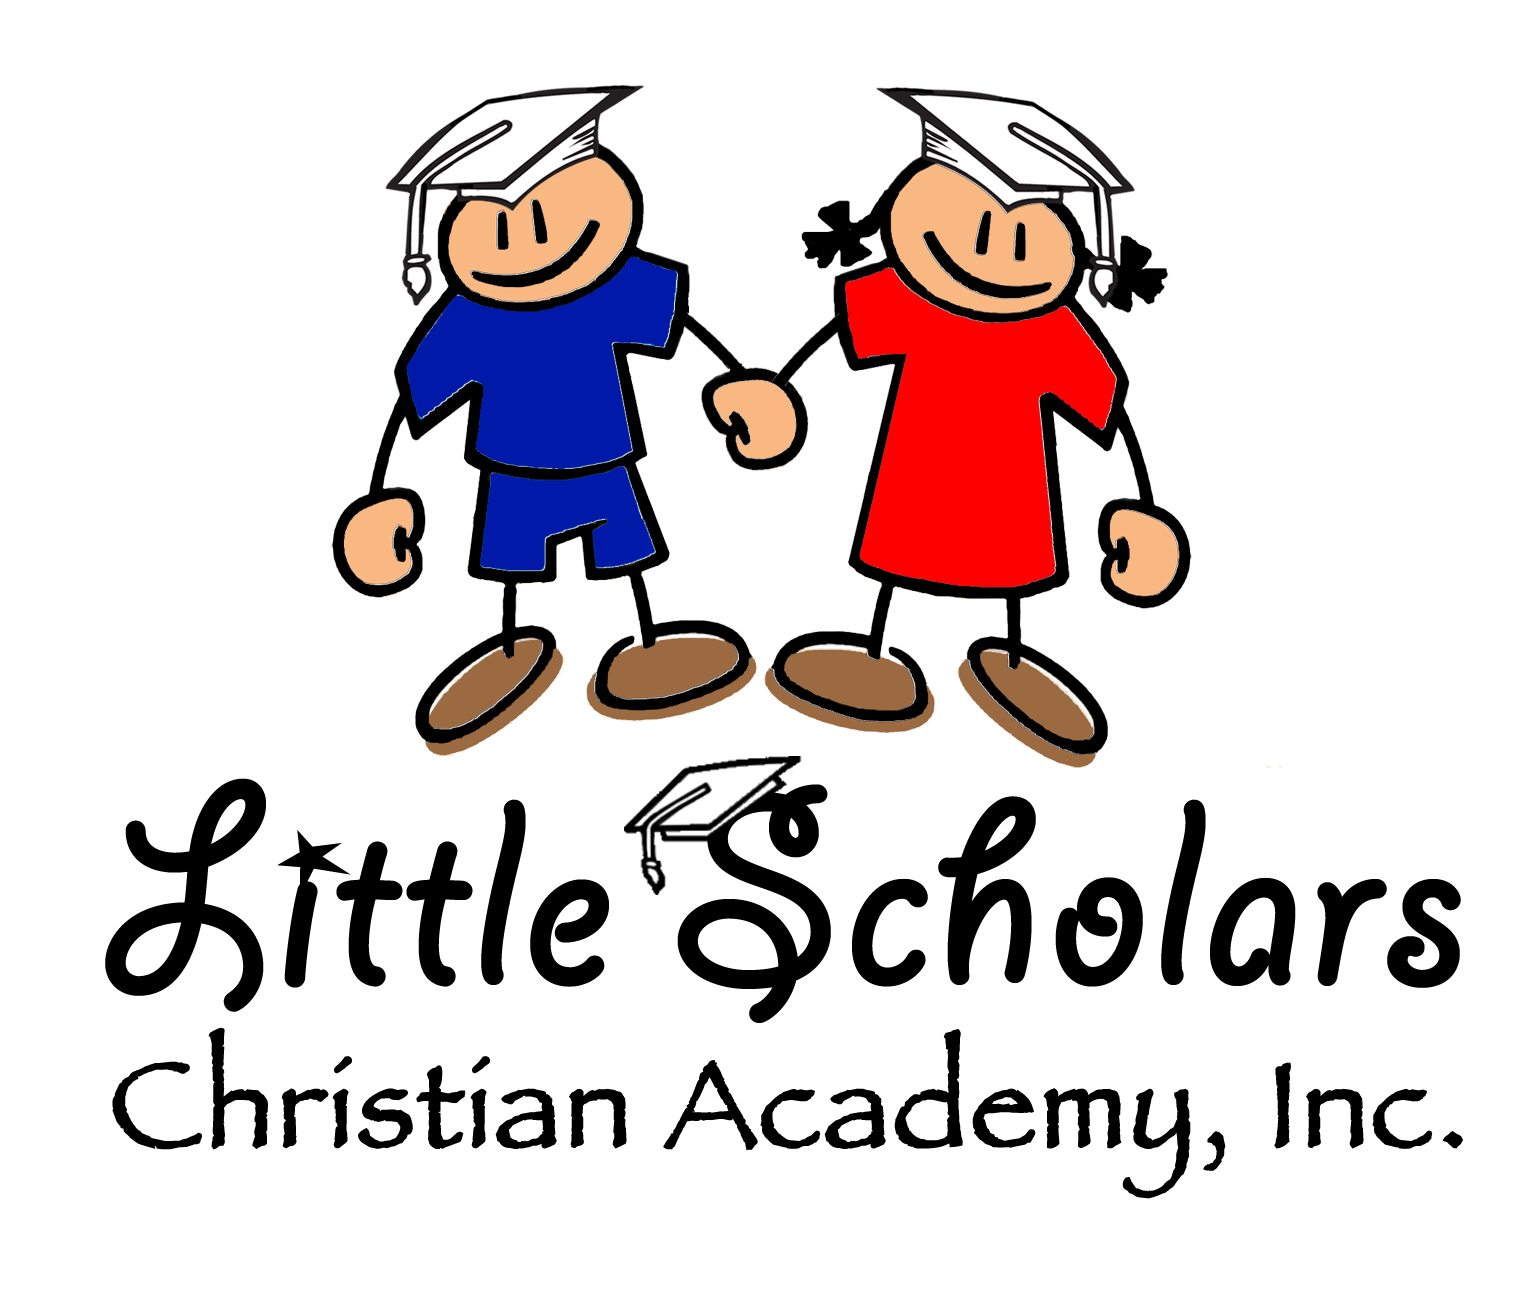 Little Scholars Christian Academy